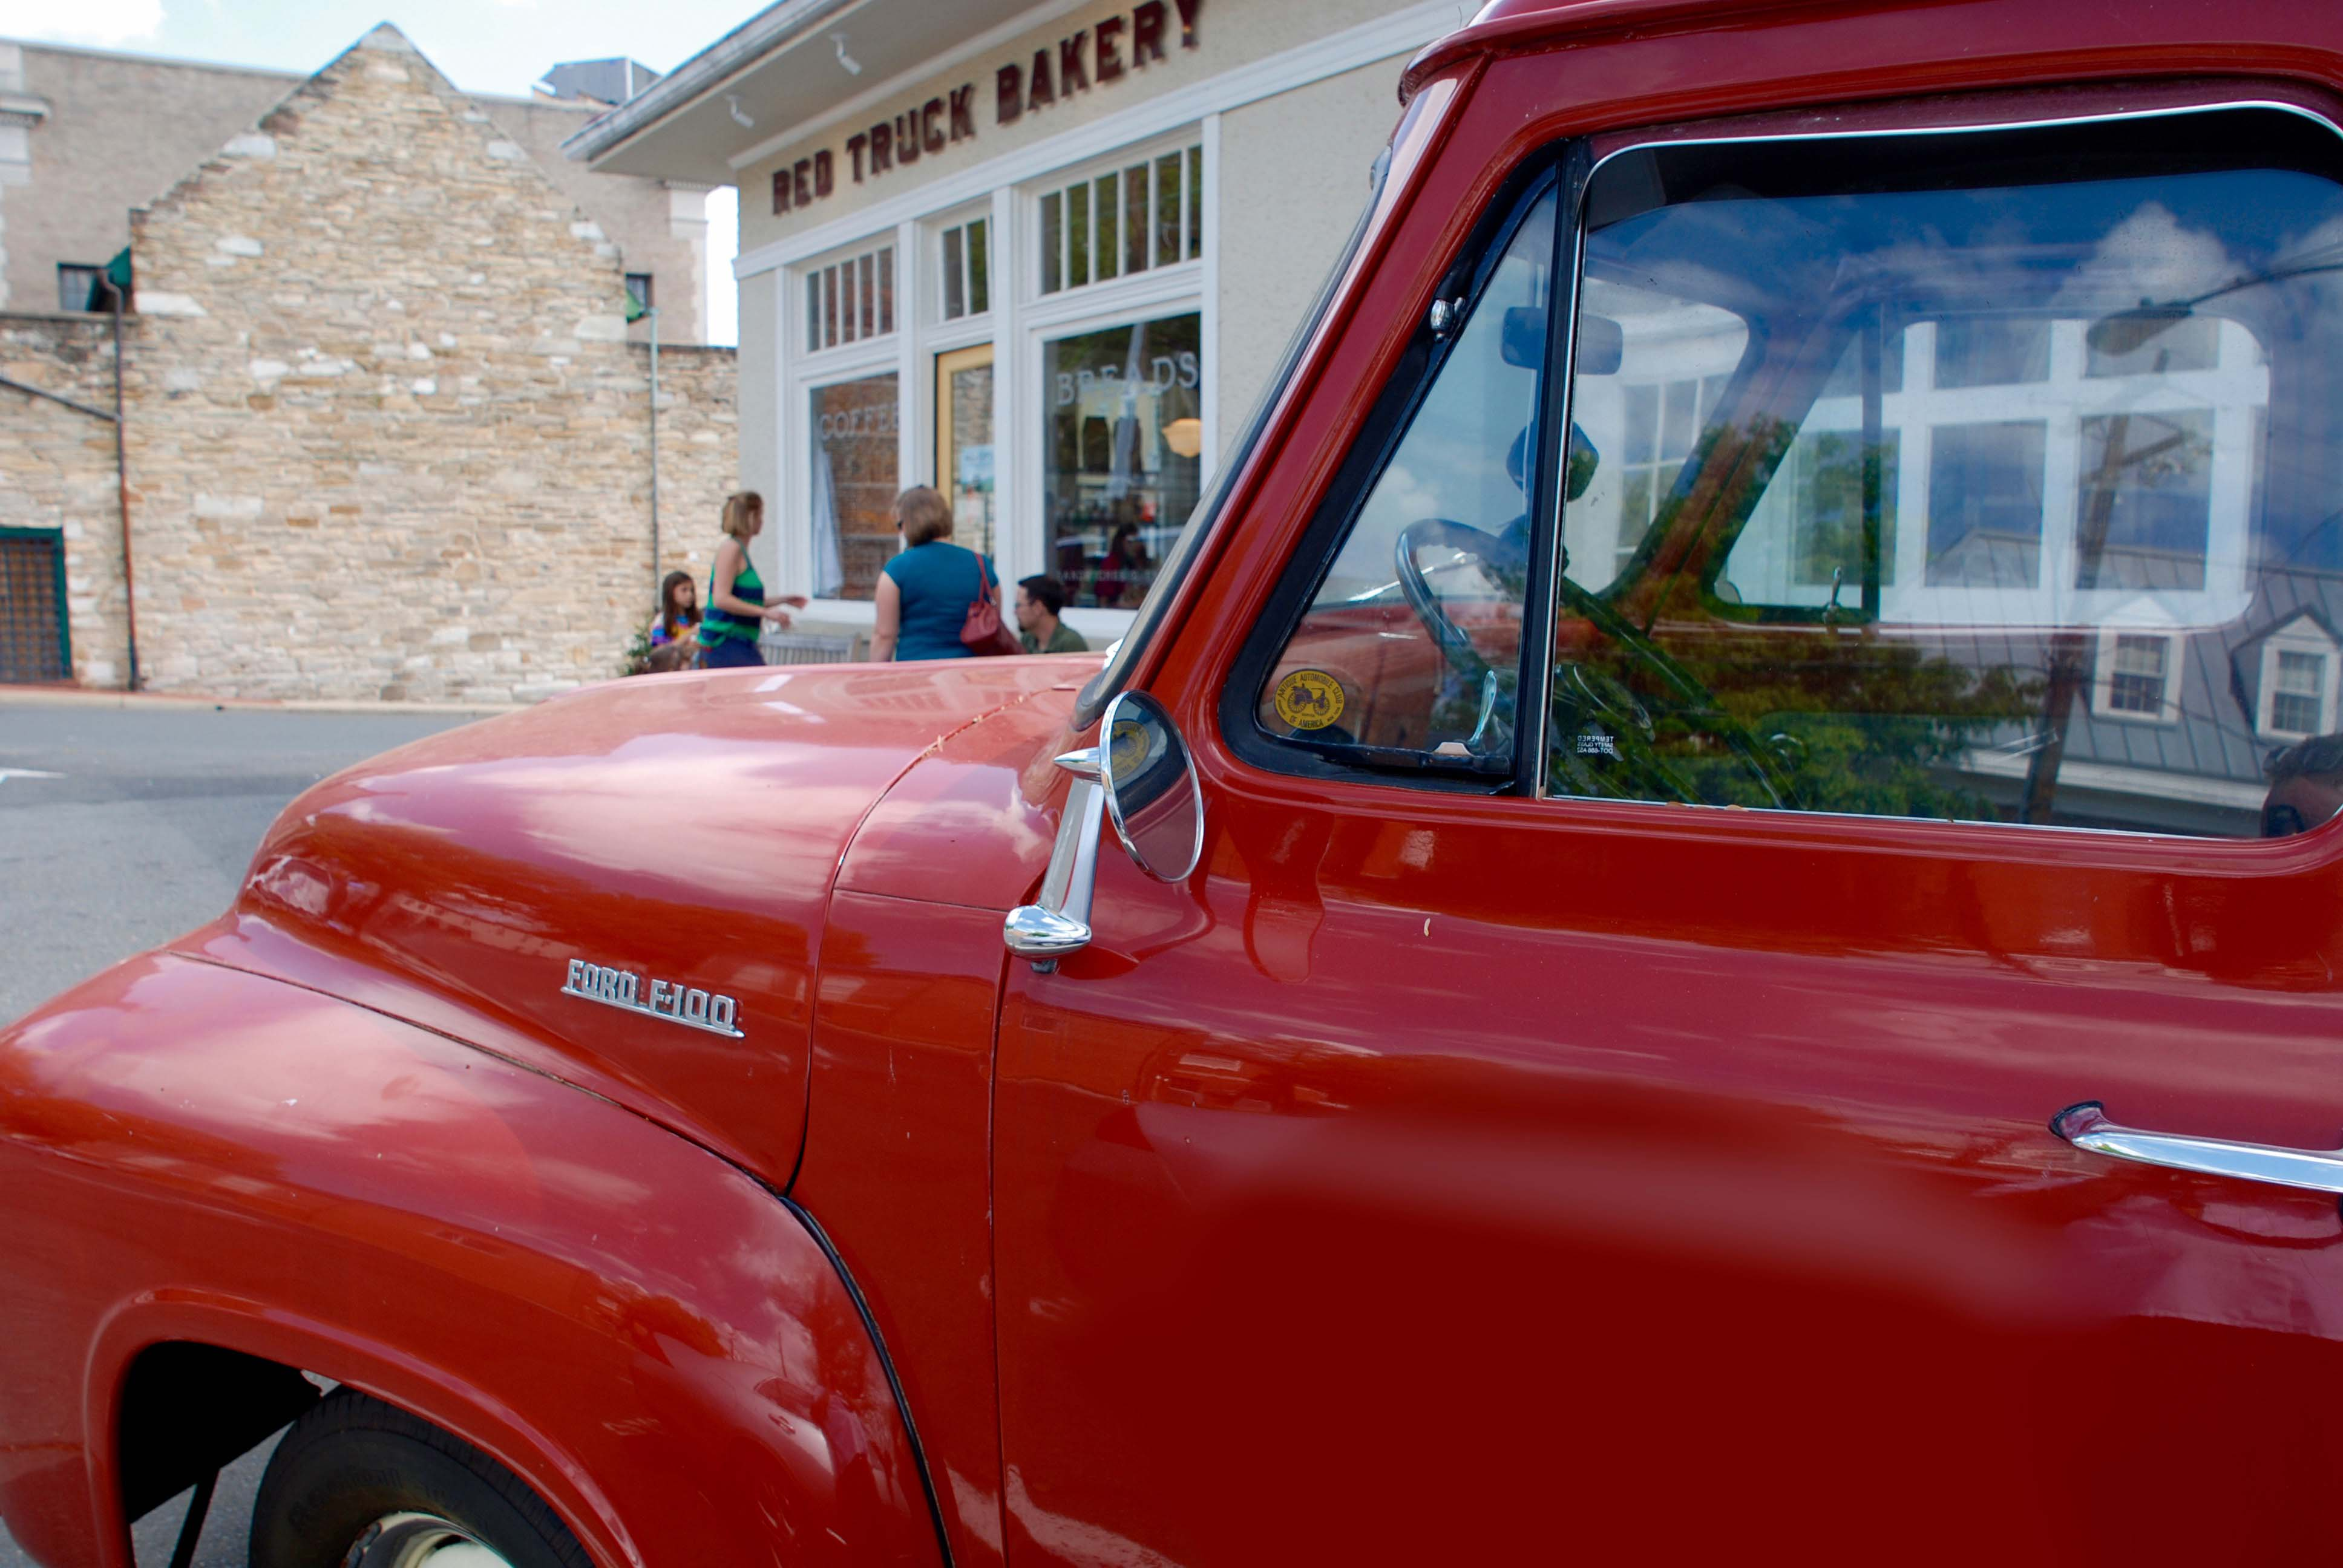 1954 cherry red Ford F-100 pickup truck, Red Truck Bakery